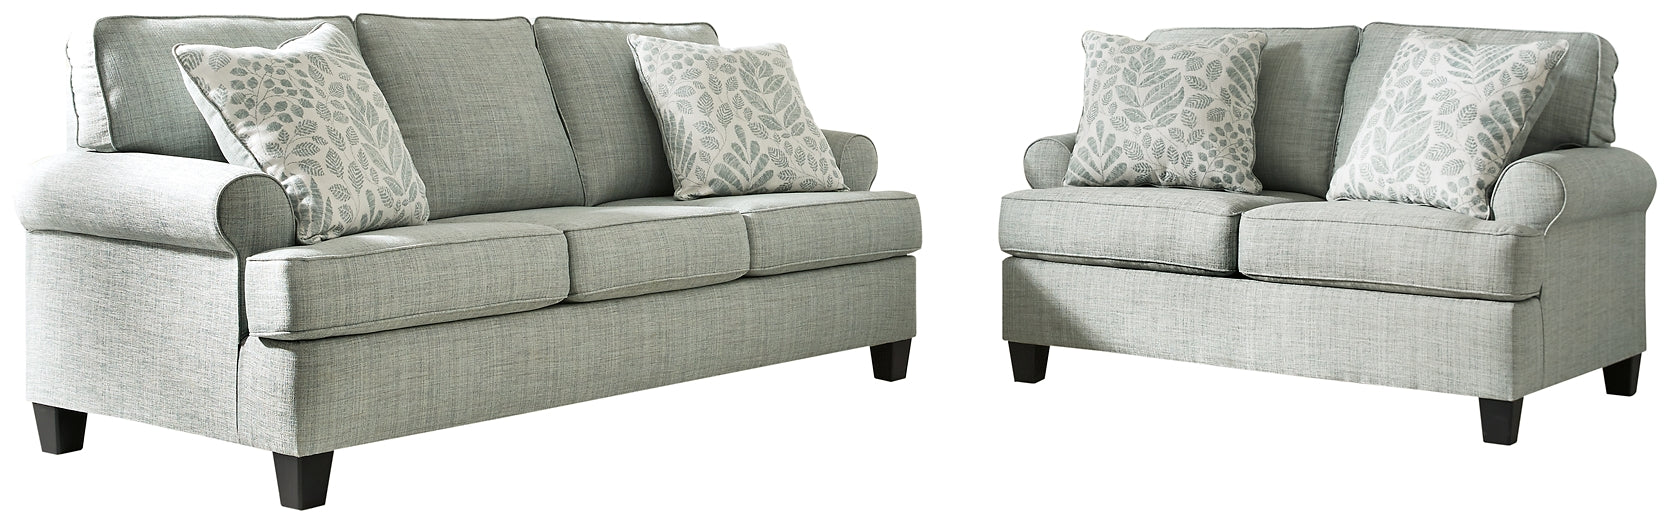 Kilarney Signature Design 2-Piece Living Room Set